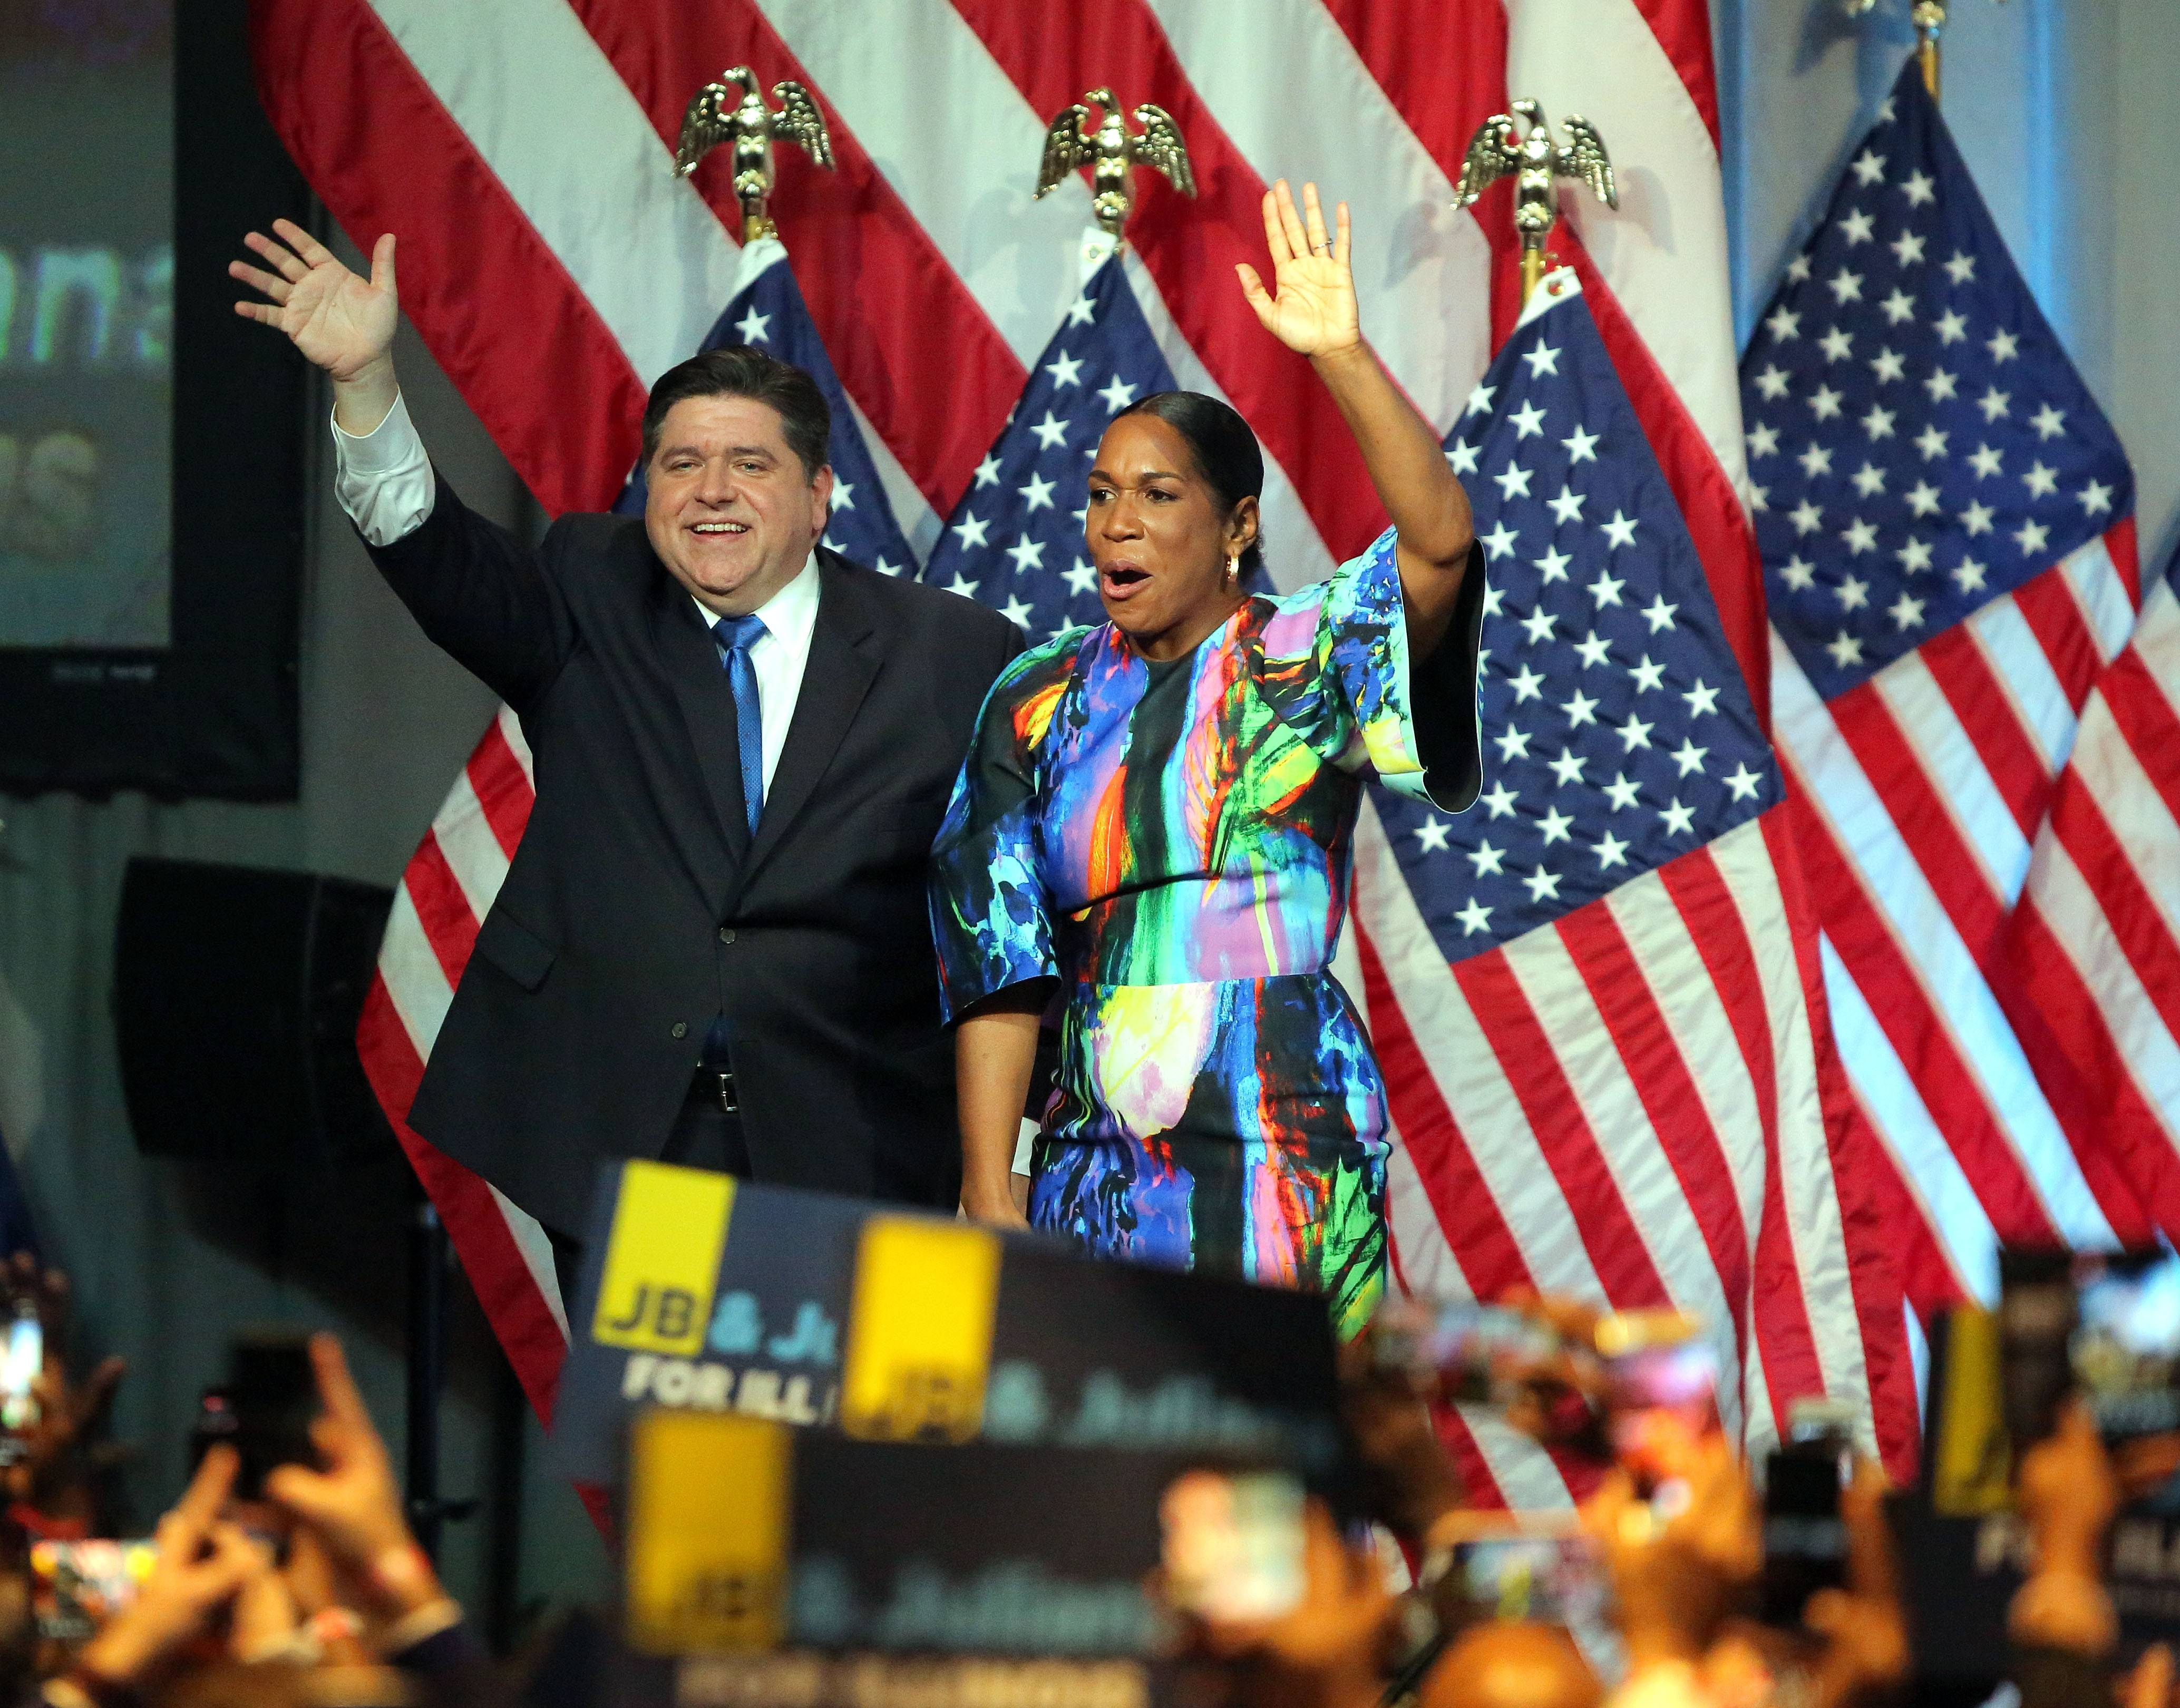 Illinois Governor-elect J.B. Pritzker and Juliana Stratton celebrate Tuesday night at the Marriott Marquis Chicago.